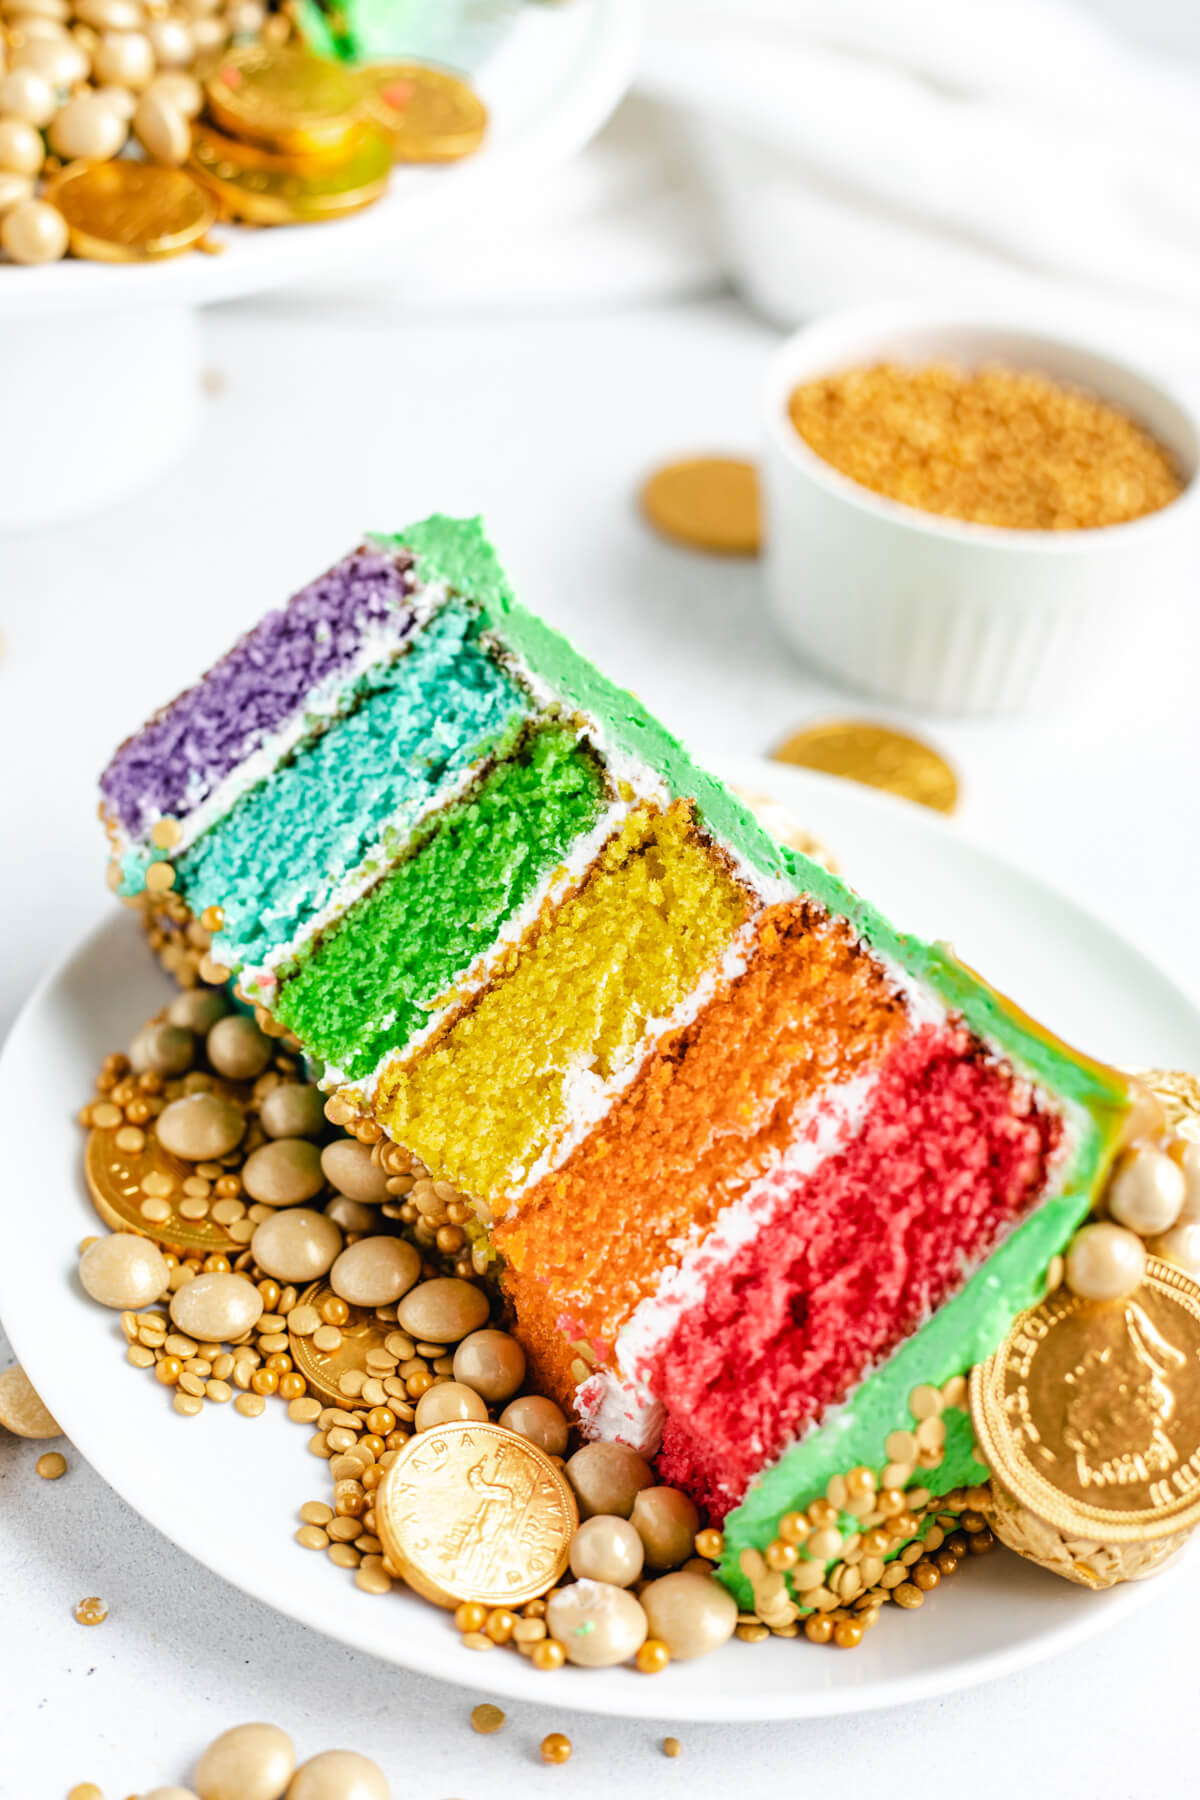 rainbow cake slice with gold sprinkles on a white plate